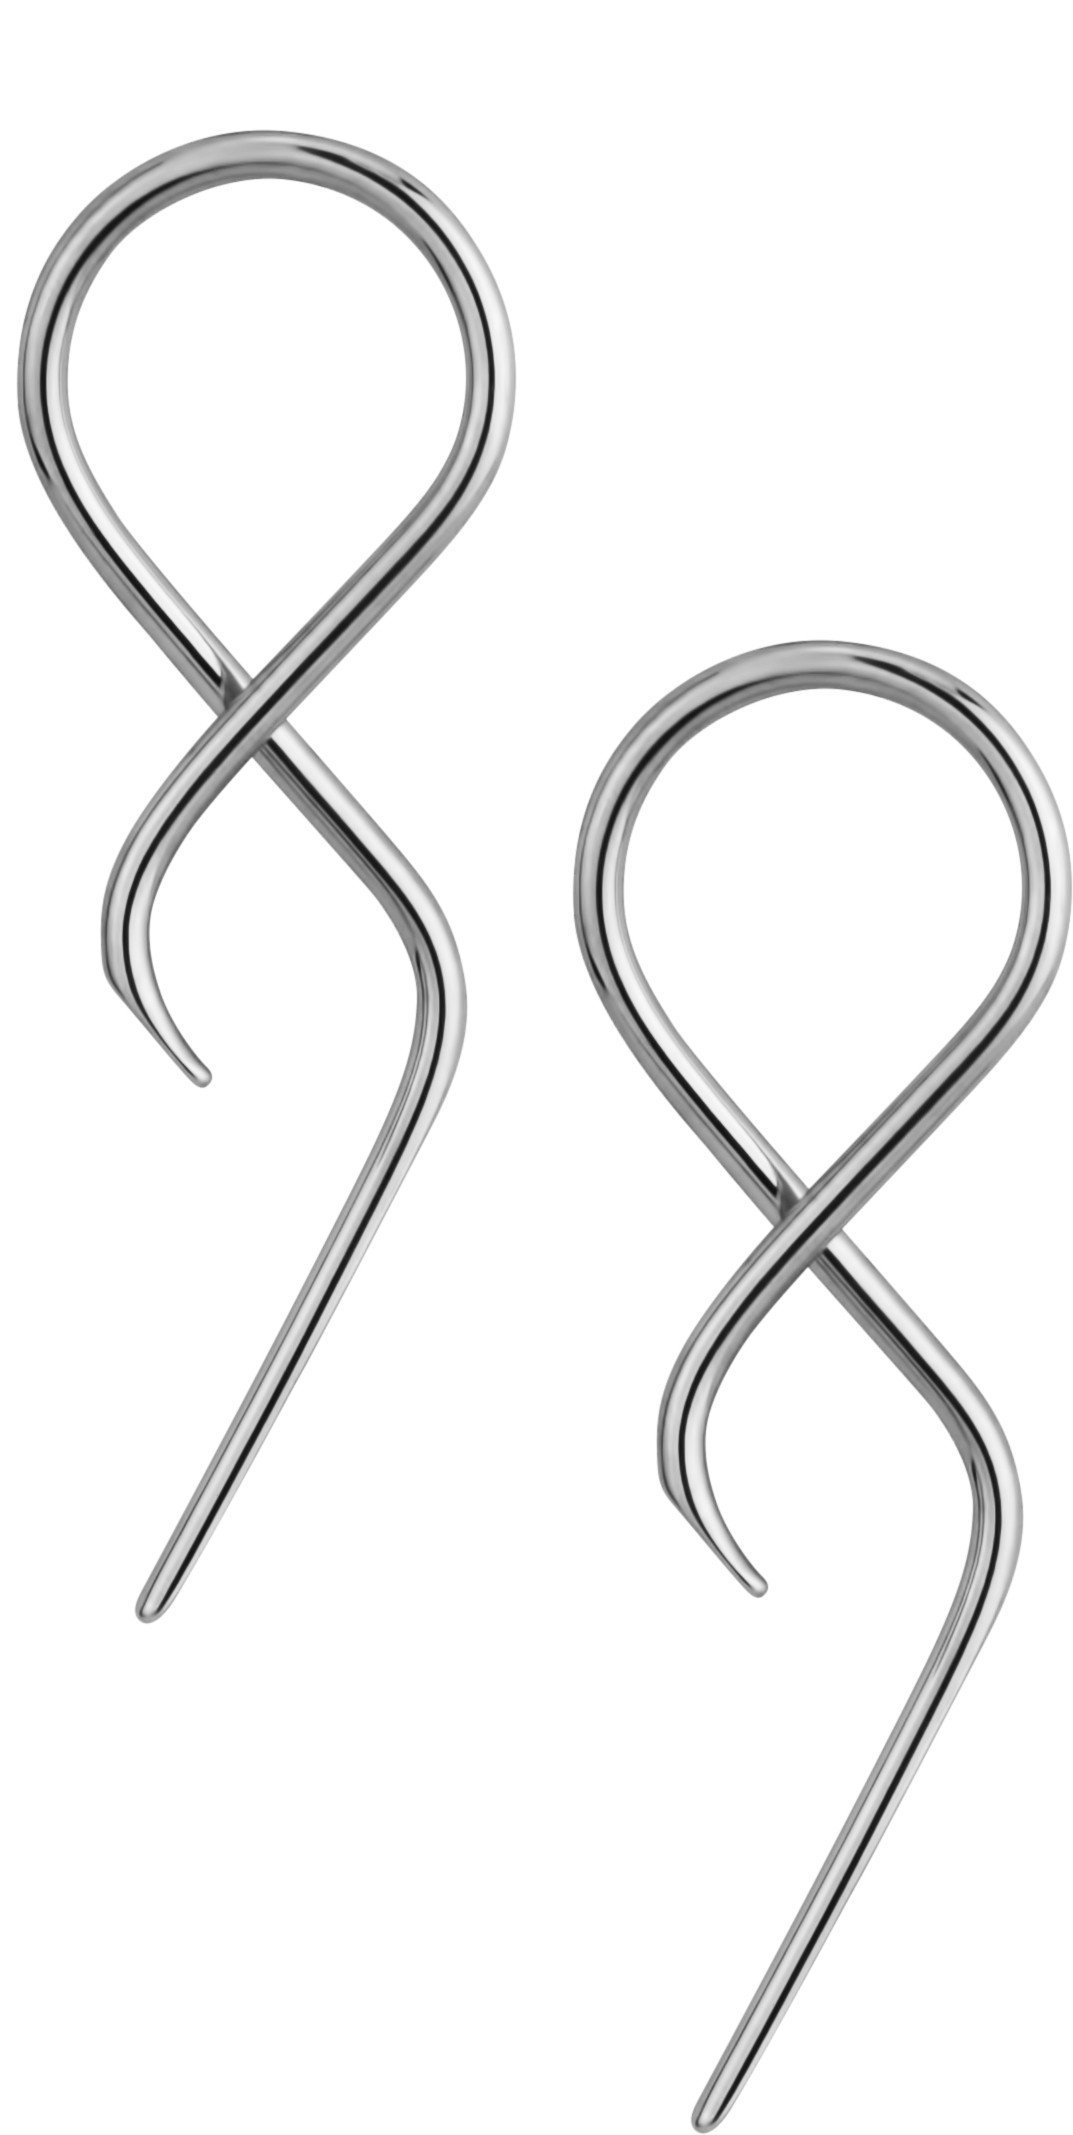 Forbidden Body Jewelry Pair of 14g Surgical Steel 1.75'' Twisting Curved Hanging Loop Taper Earrings by Forbidden Body Jewelry